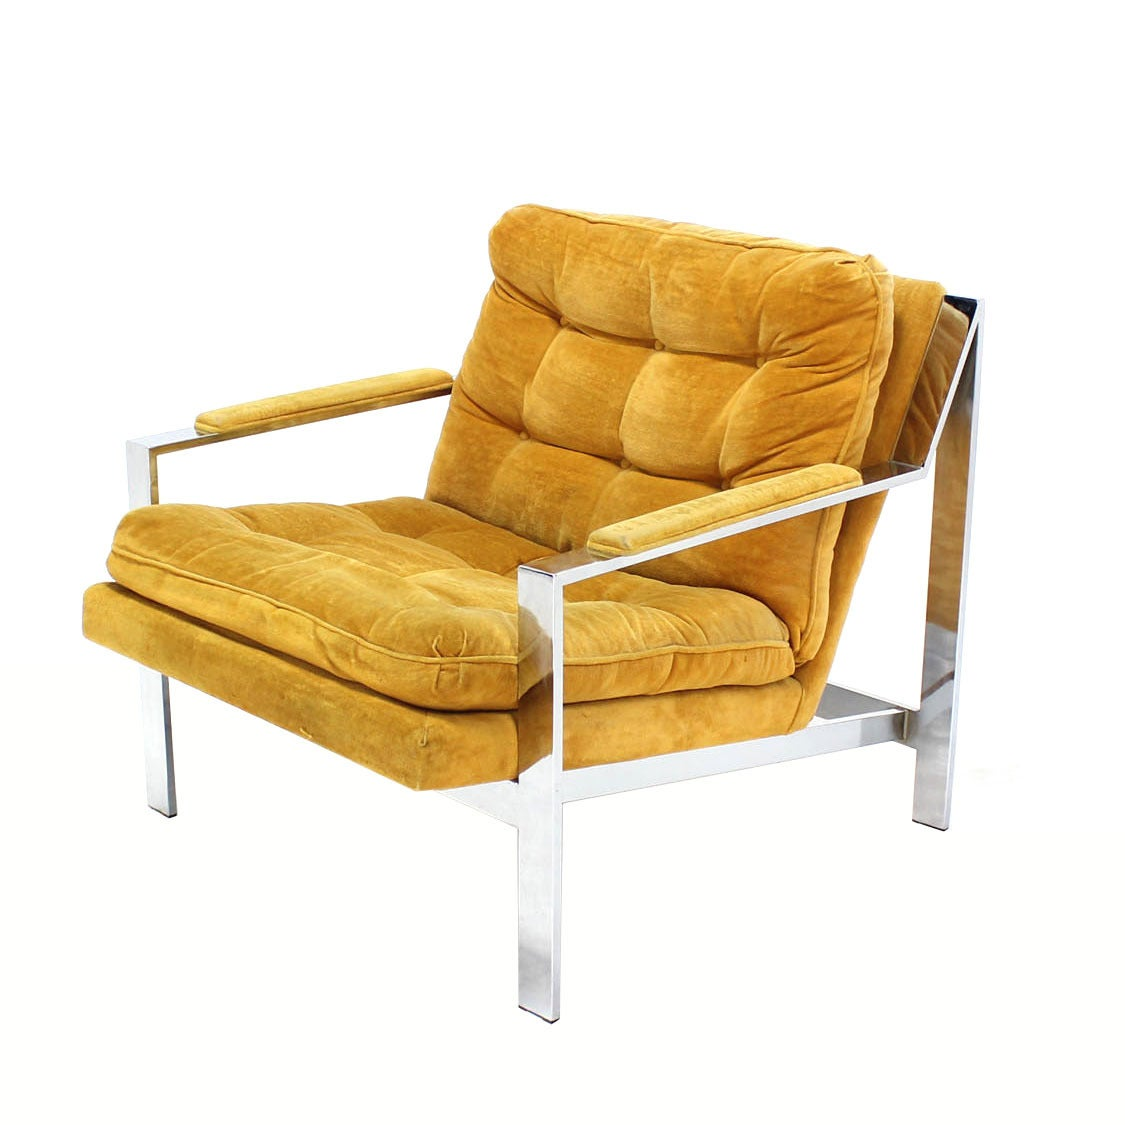 pair of mid century modern lounge chairs by baughman at 1stdibs